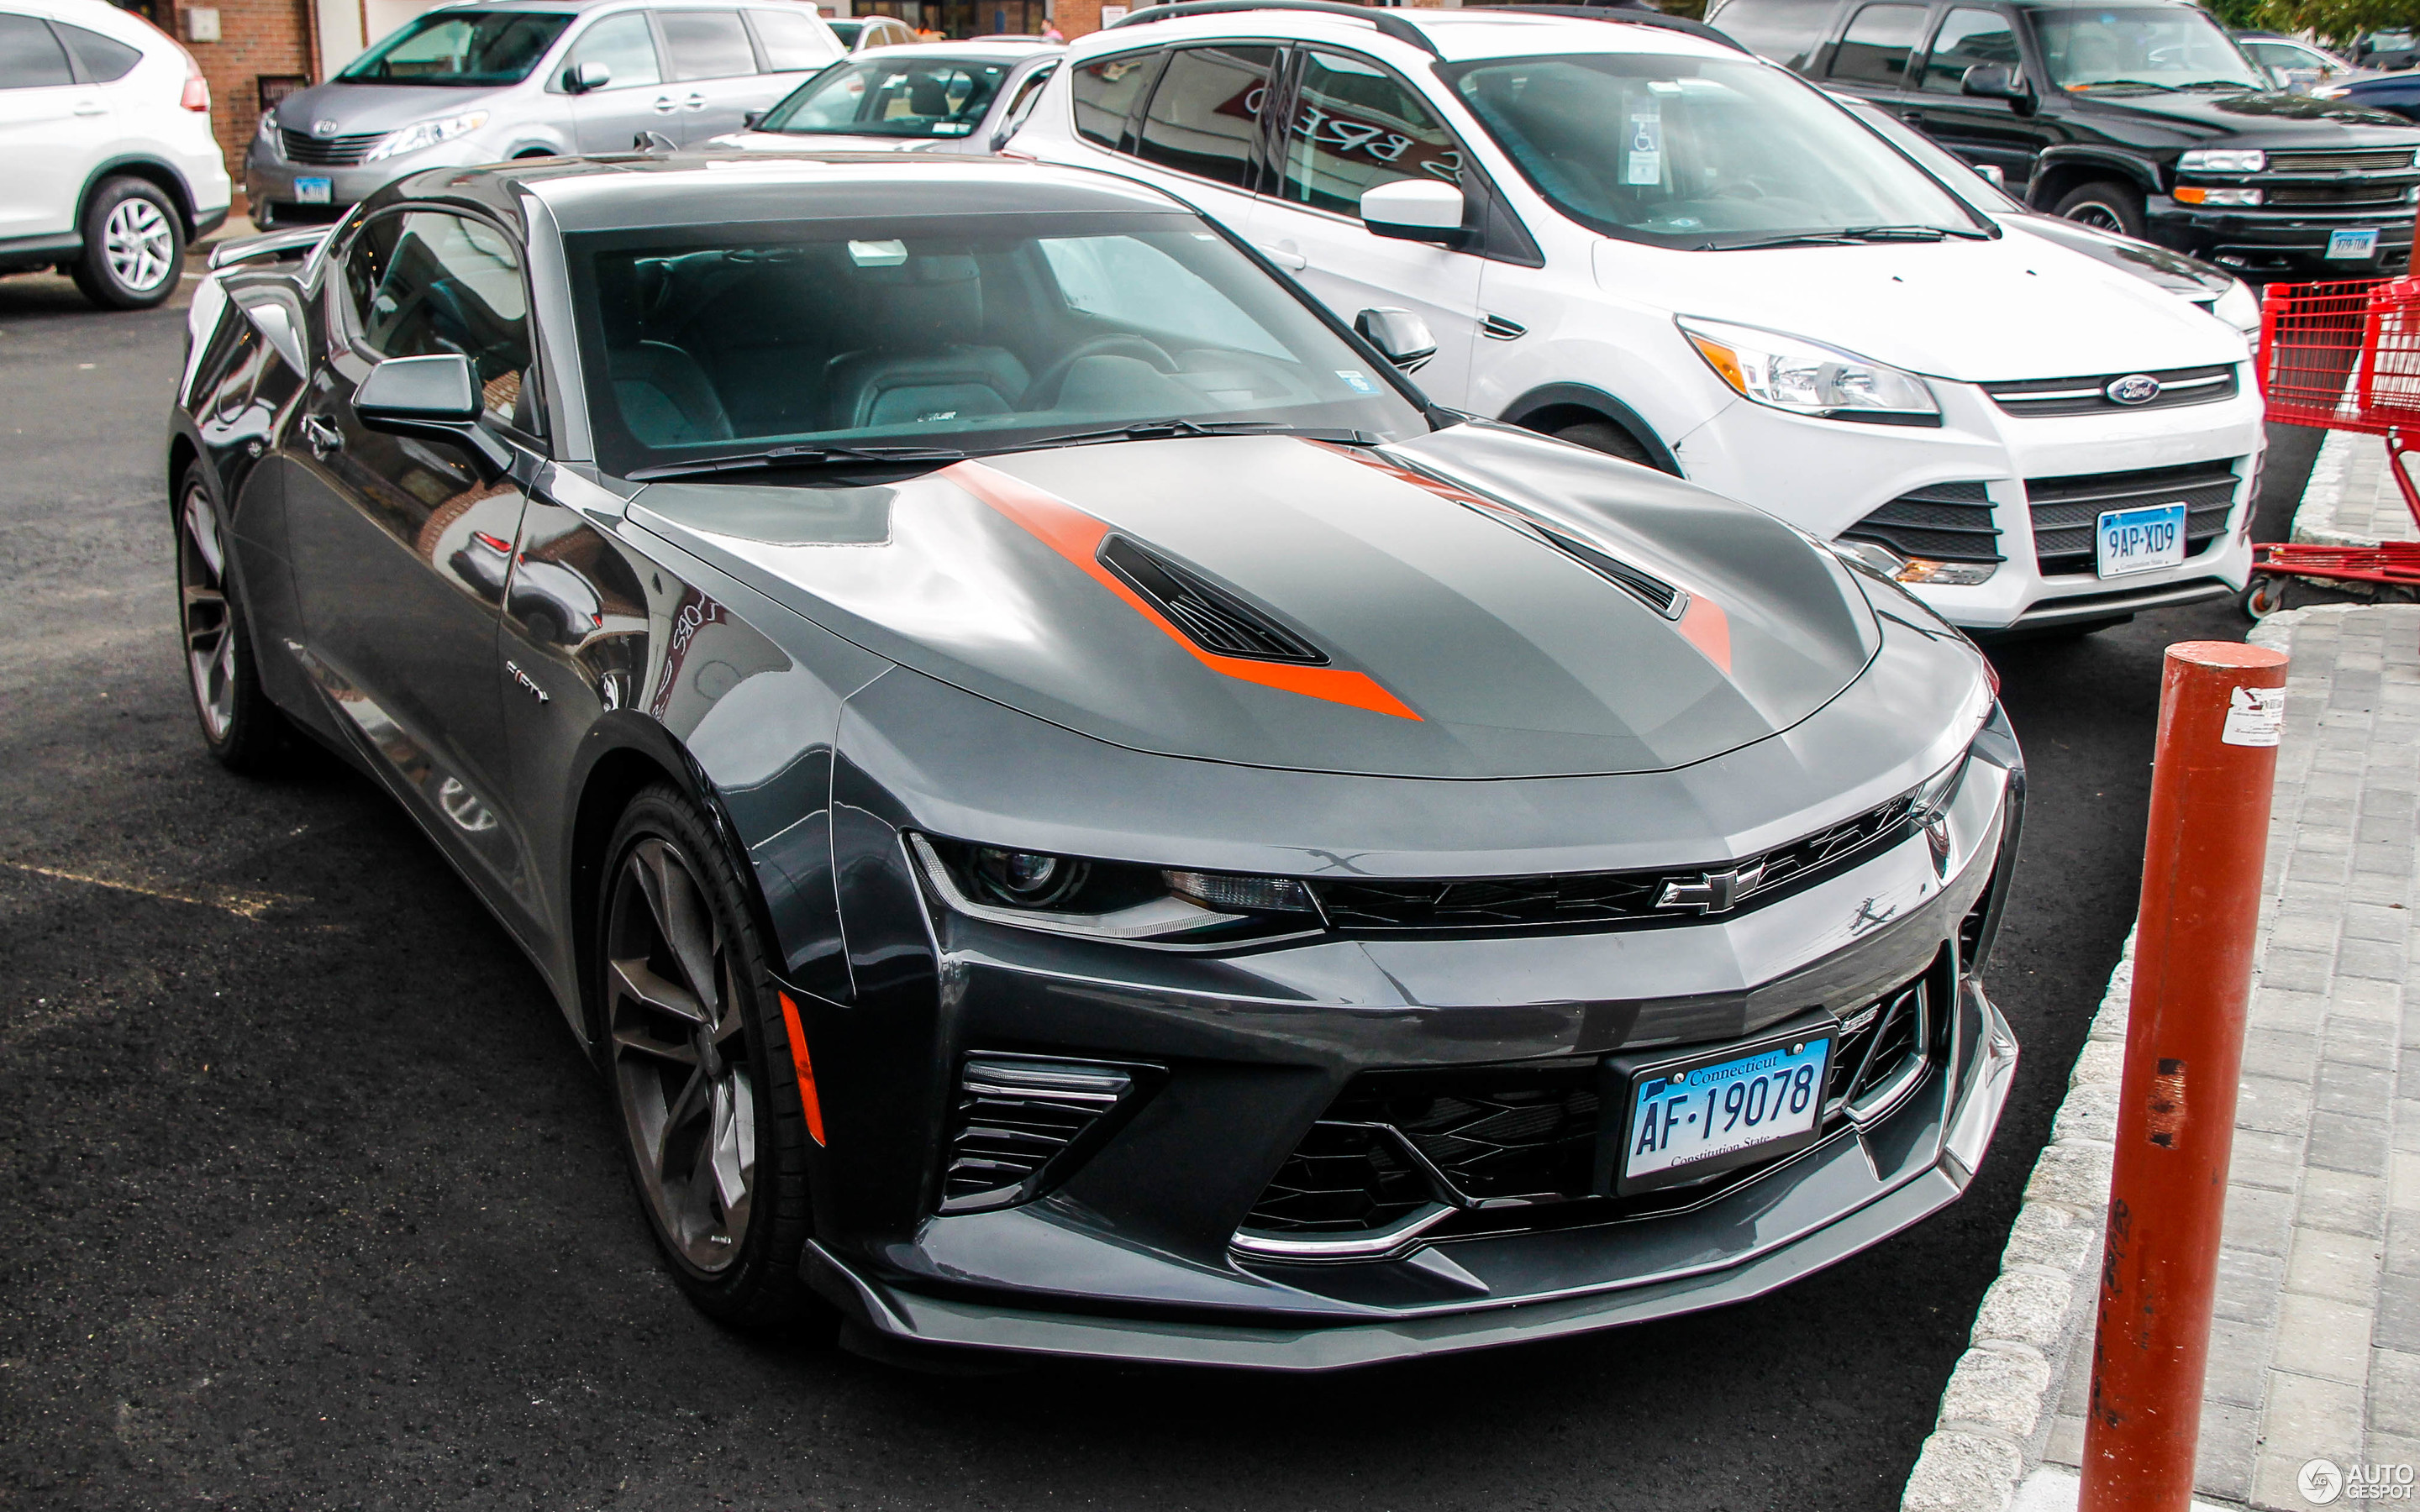 2017 Camaro 50th Anniversary >> Chevrolet Camaro Ss 2016 50th Anniversary 10 December 2017